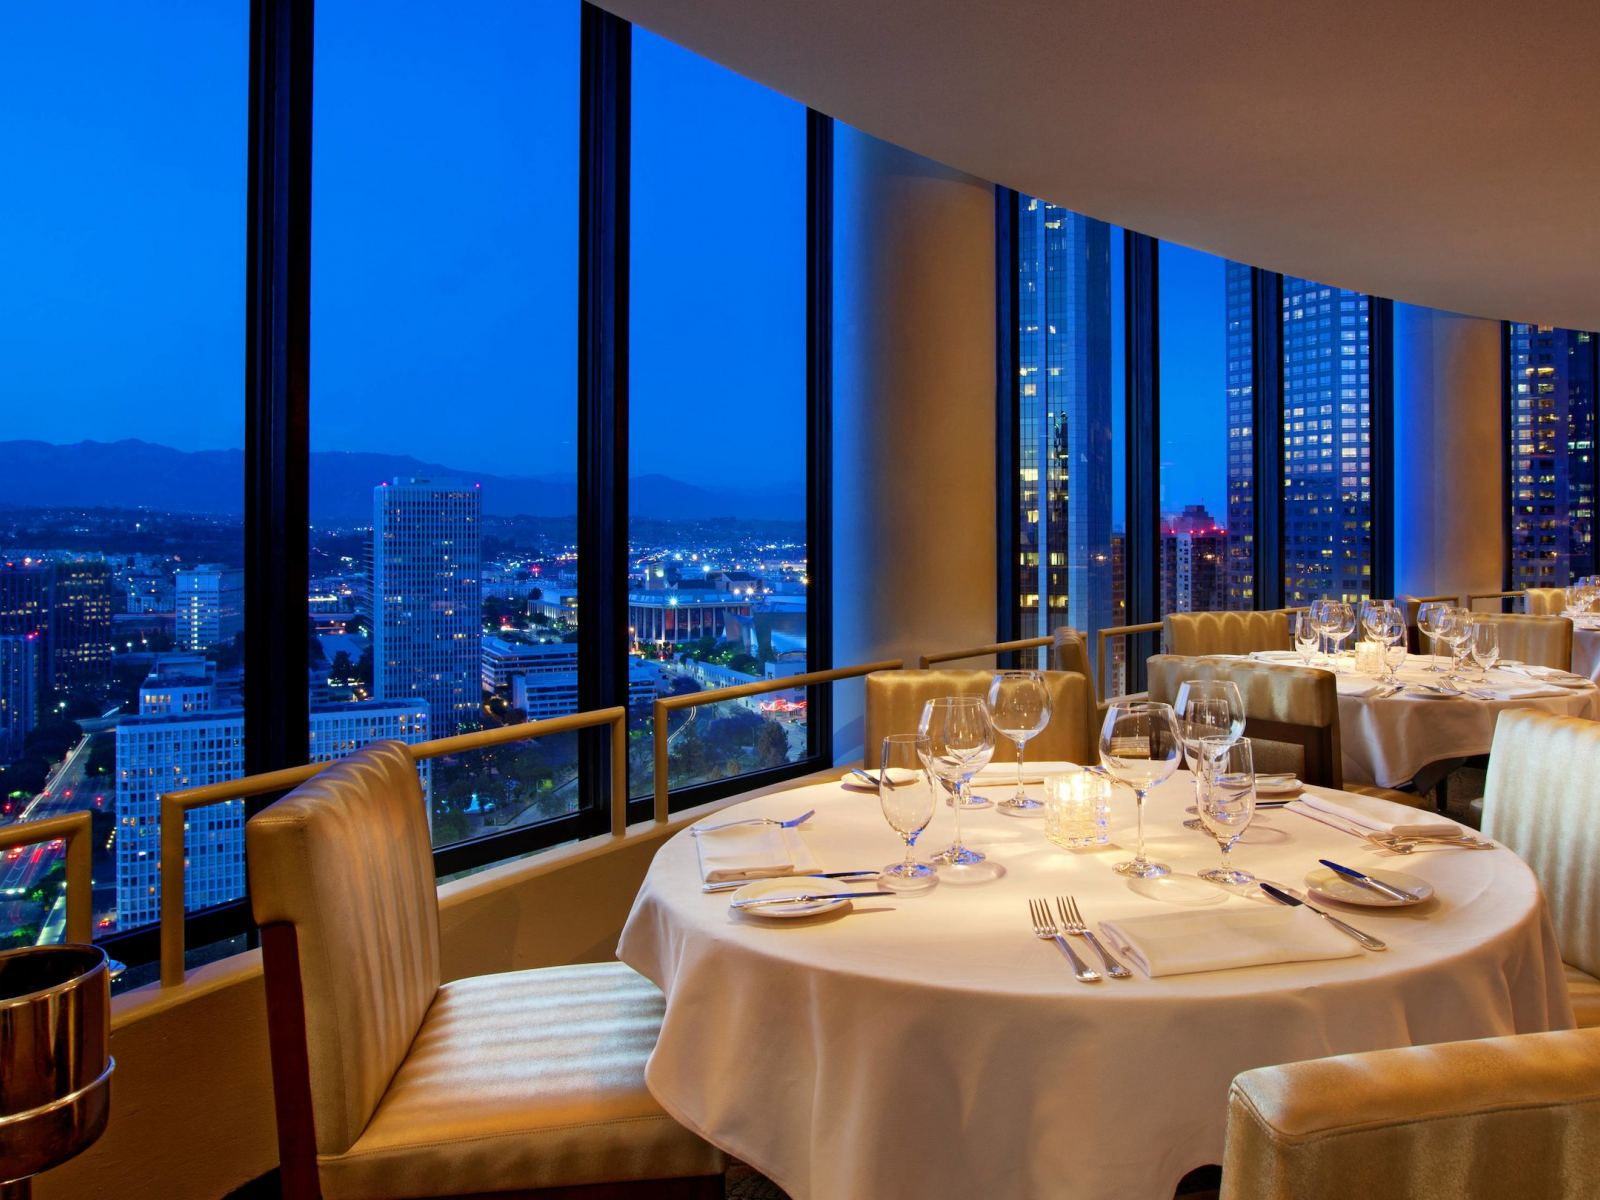 The Best Restaurants With A View In Los Angeles Discover Los Angeles